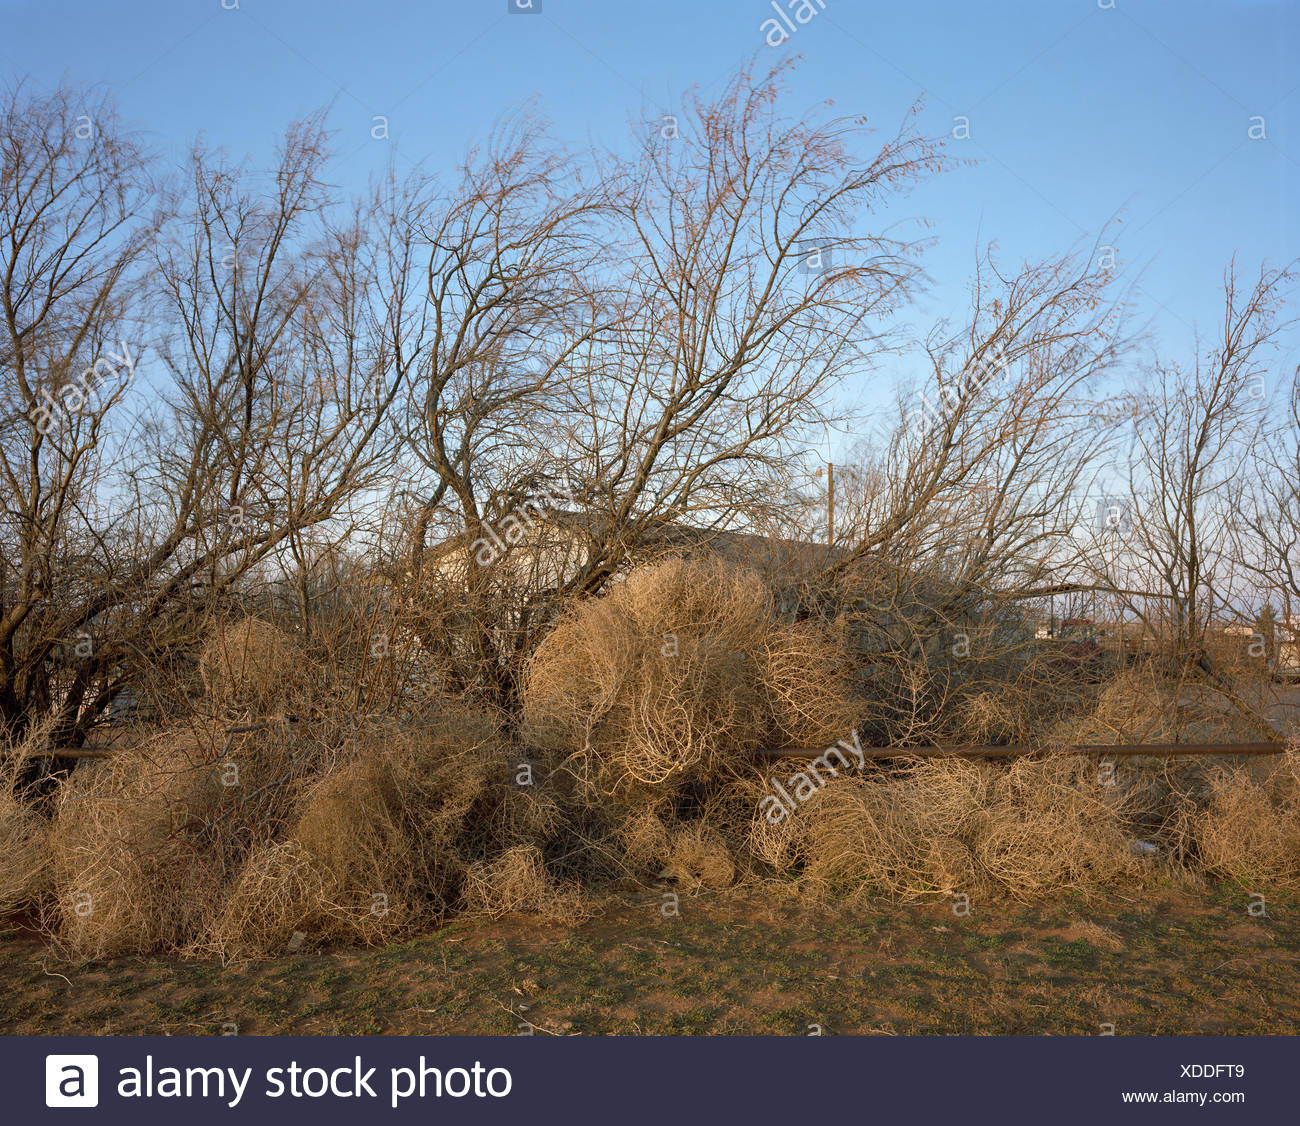 Tumbleweeds obscure a home from view. Stock Photo